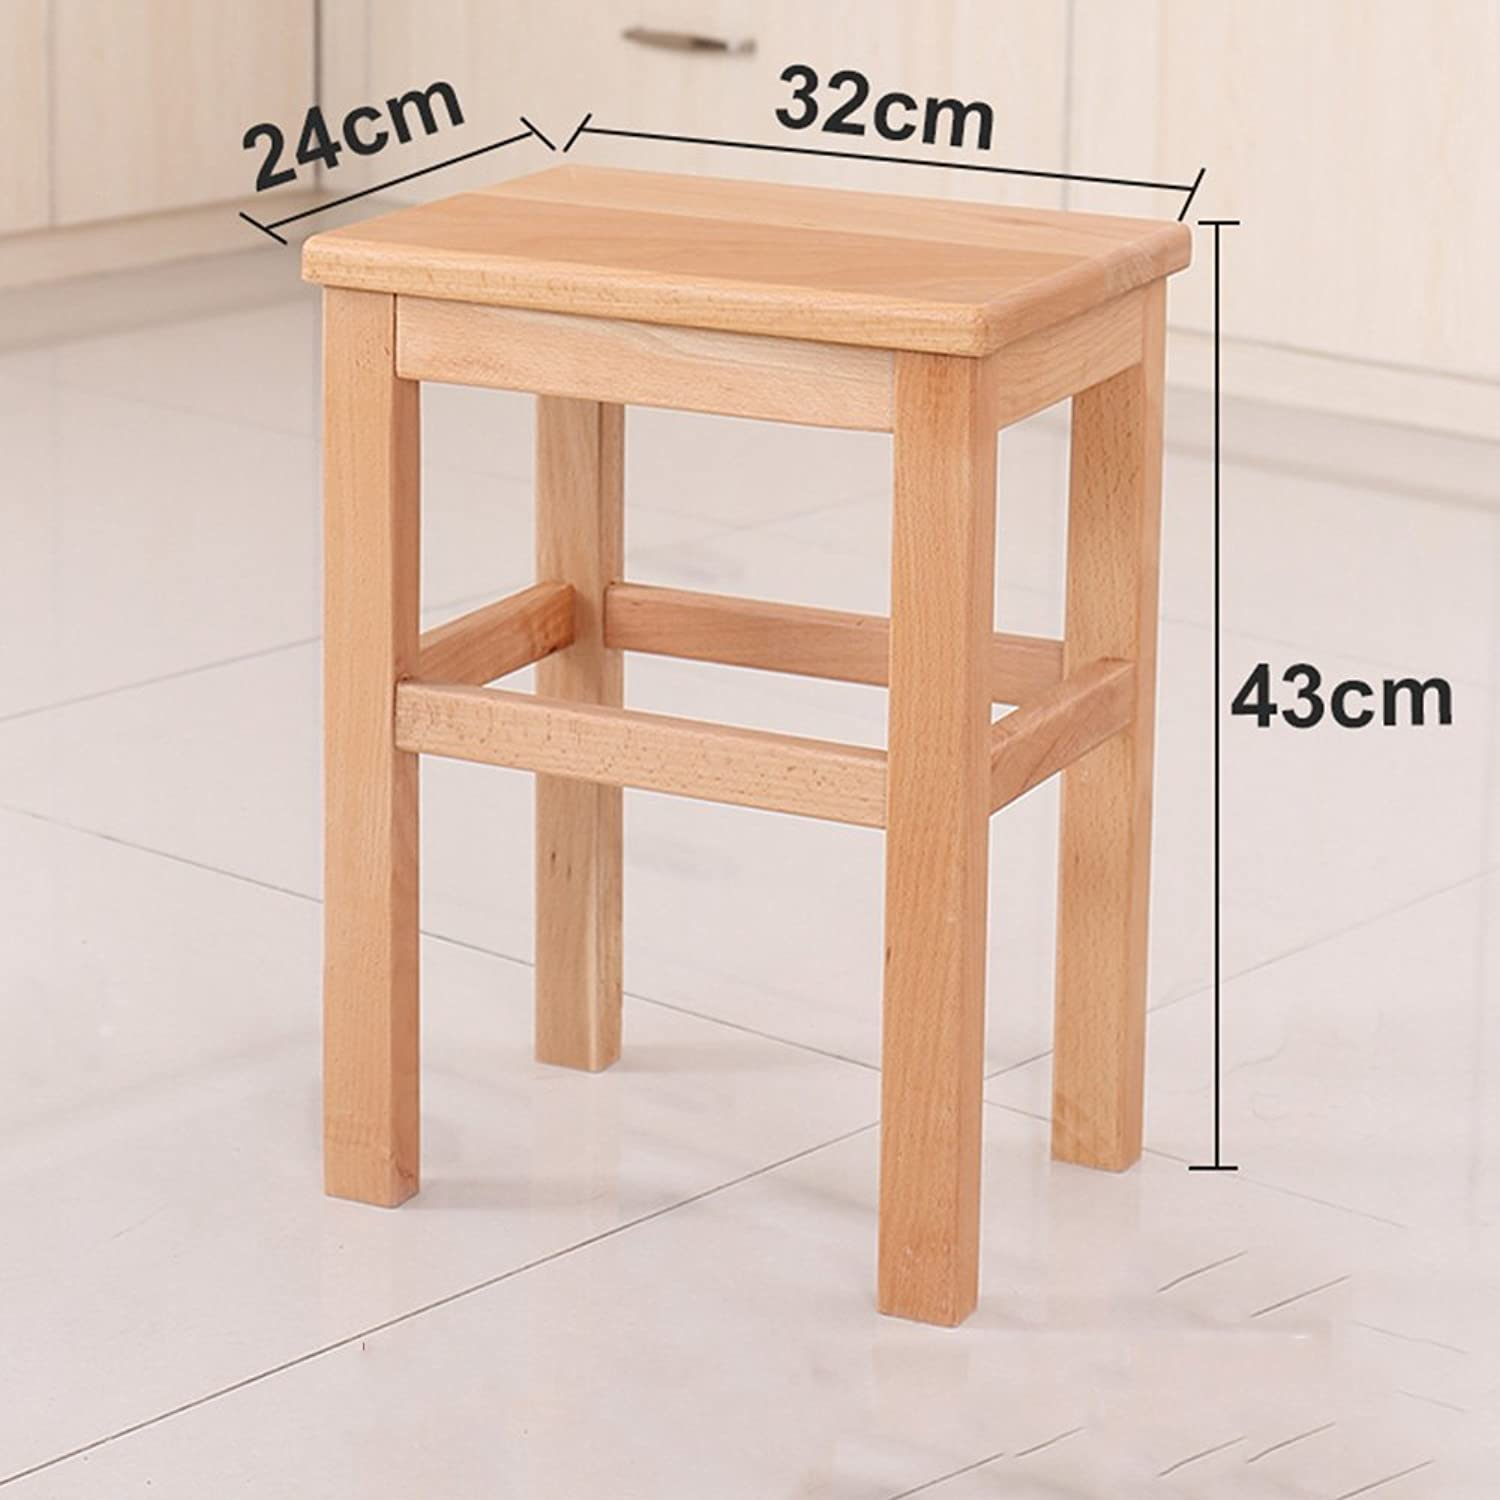 Stool Solid Wood 24  32  43cm 27  37  45cm 27  37  60cm Foyer Living Room Comfortable (color   A, Size   43cm)